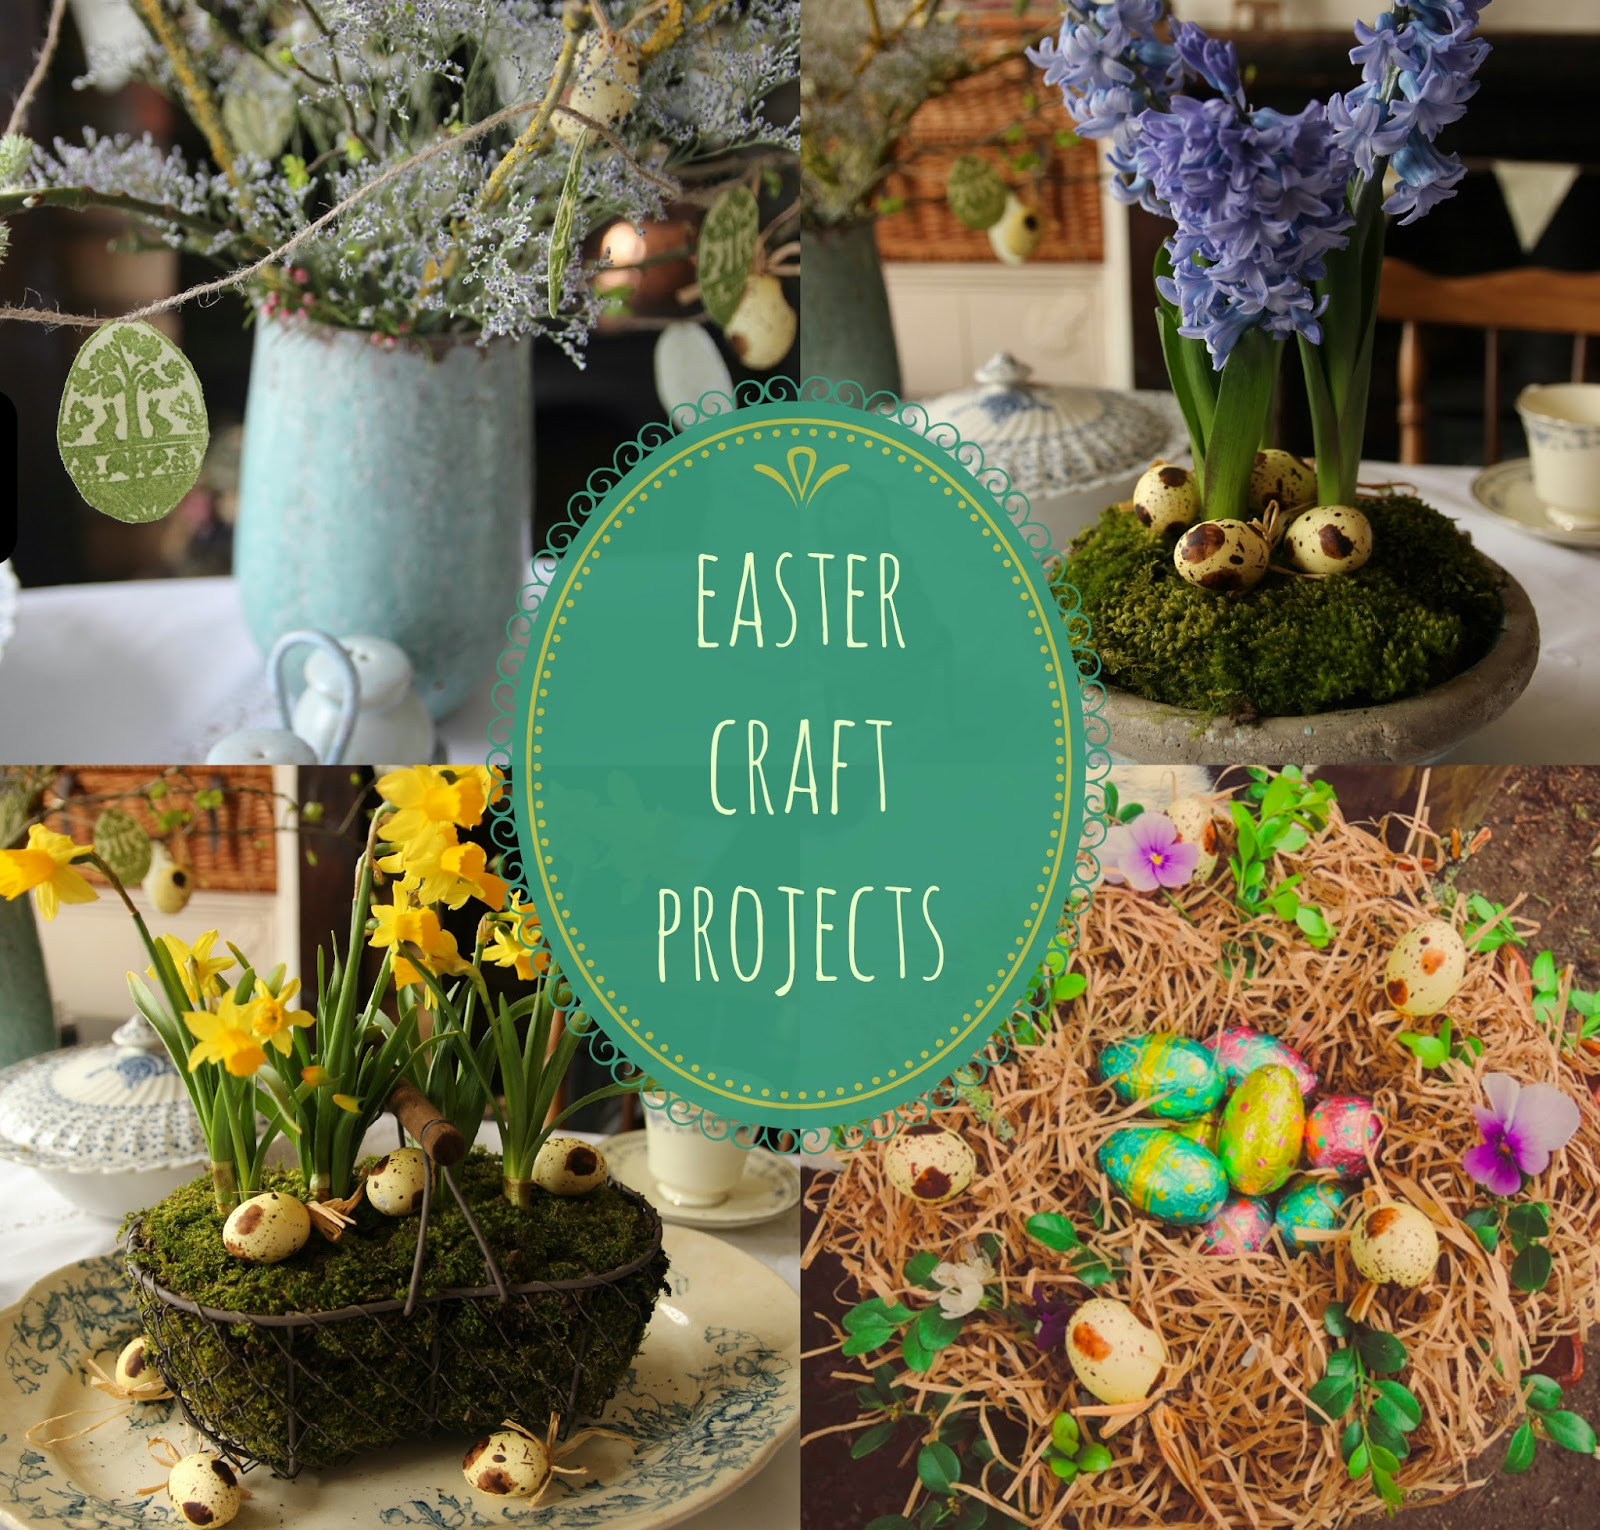 Easter craft projects - A Handmade Cottage